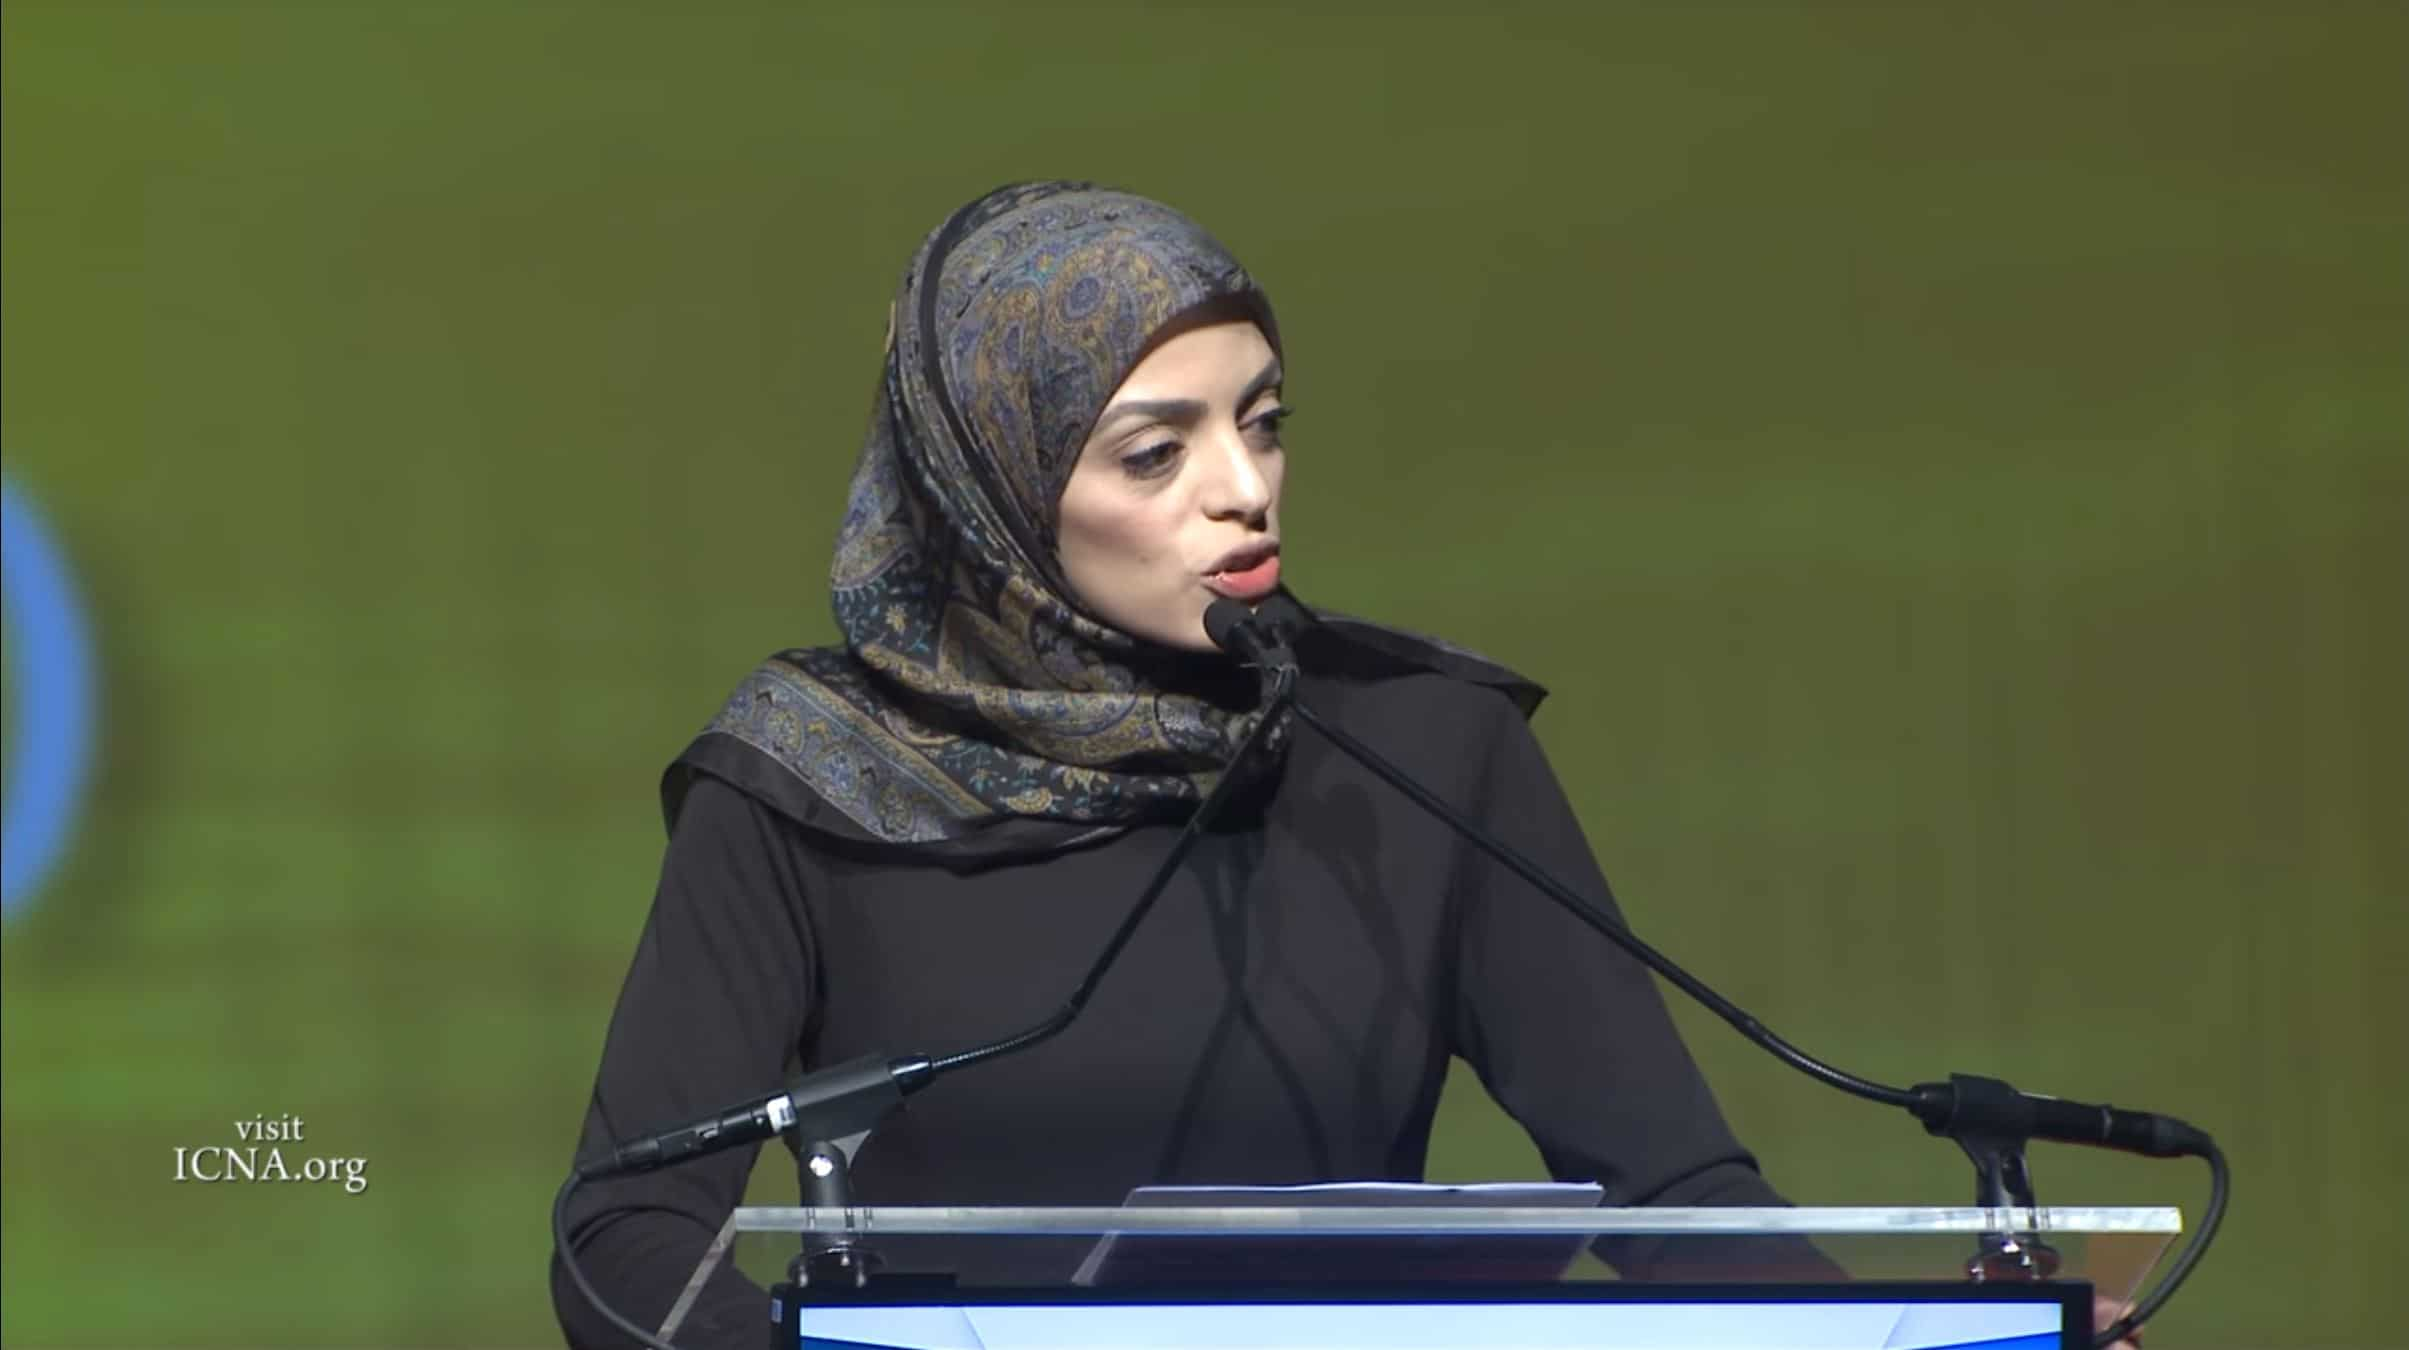 Dalia Fahmy – No Fear: I am a Muslim